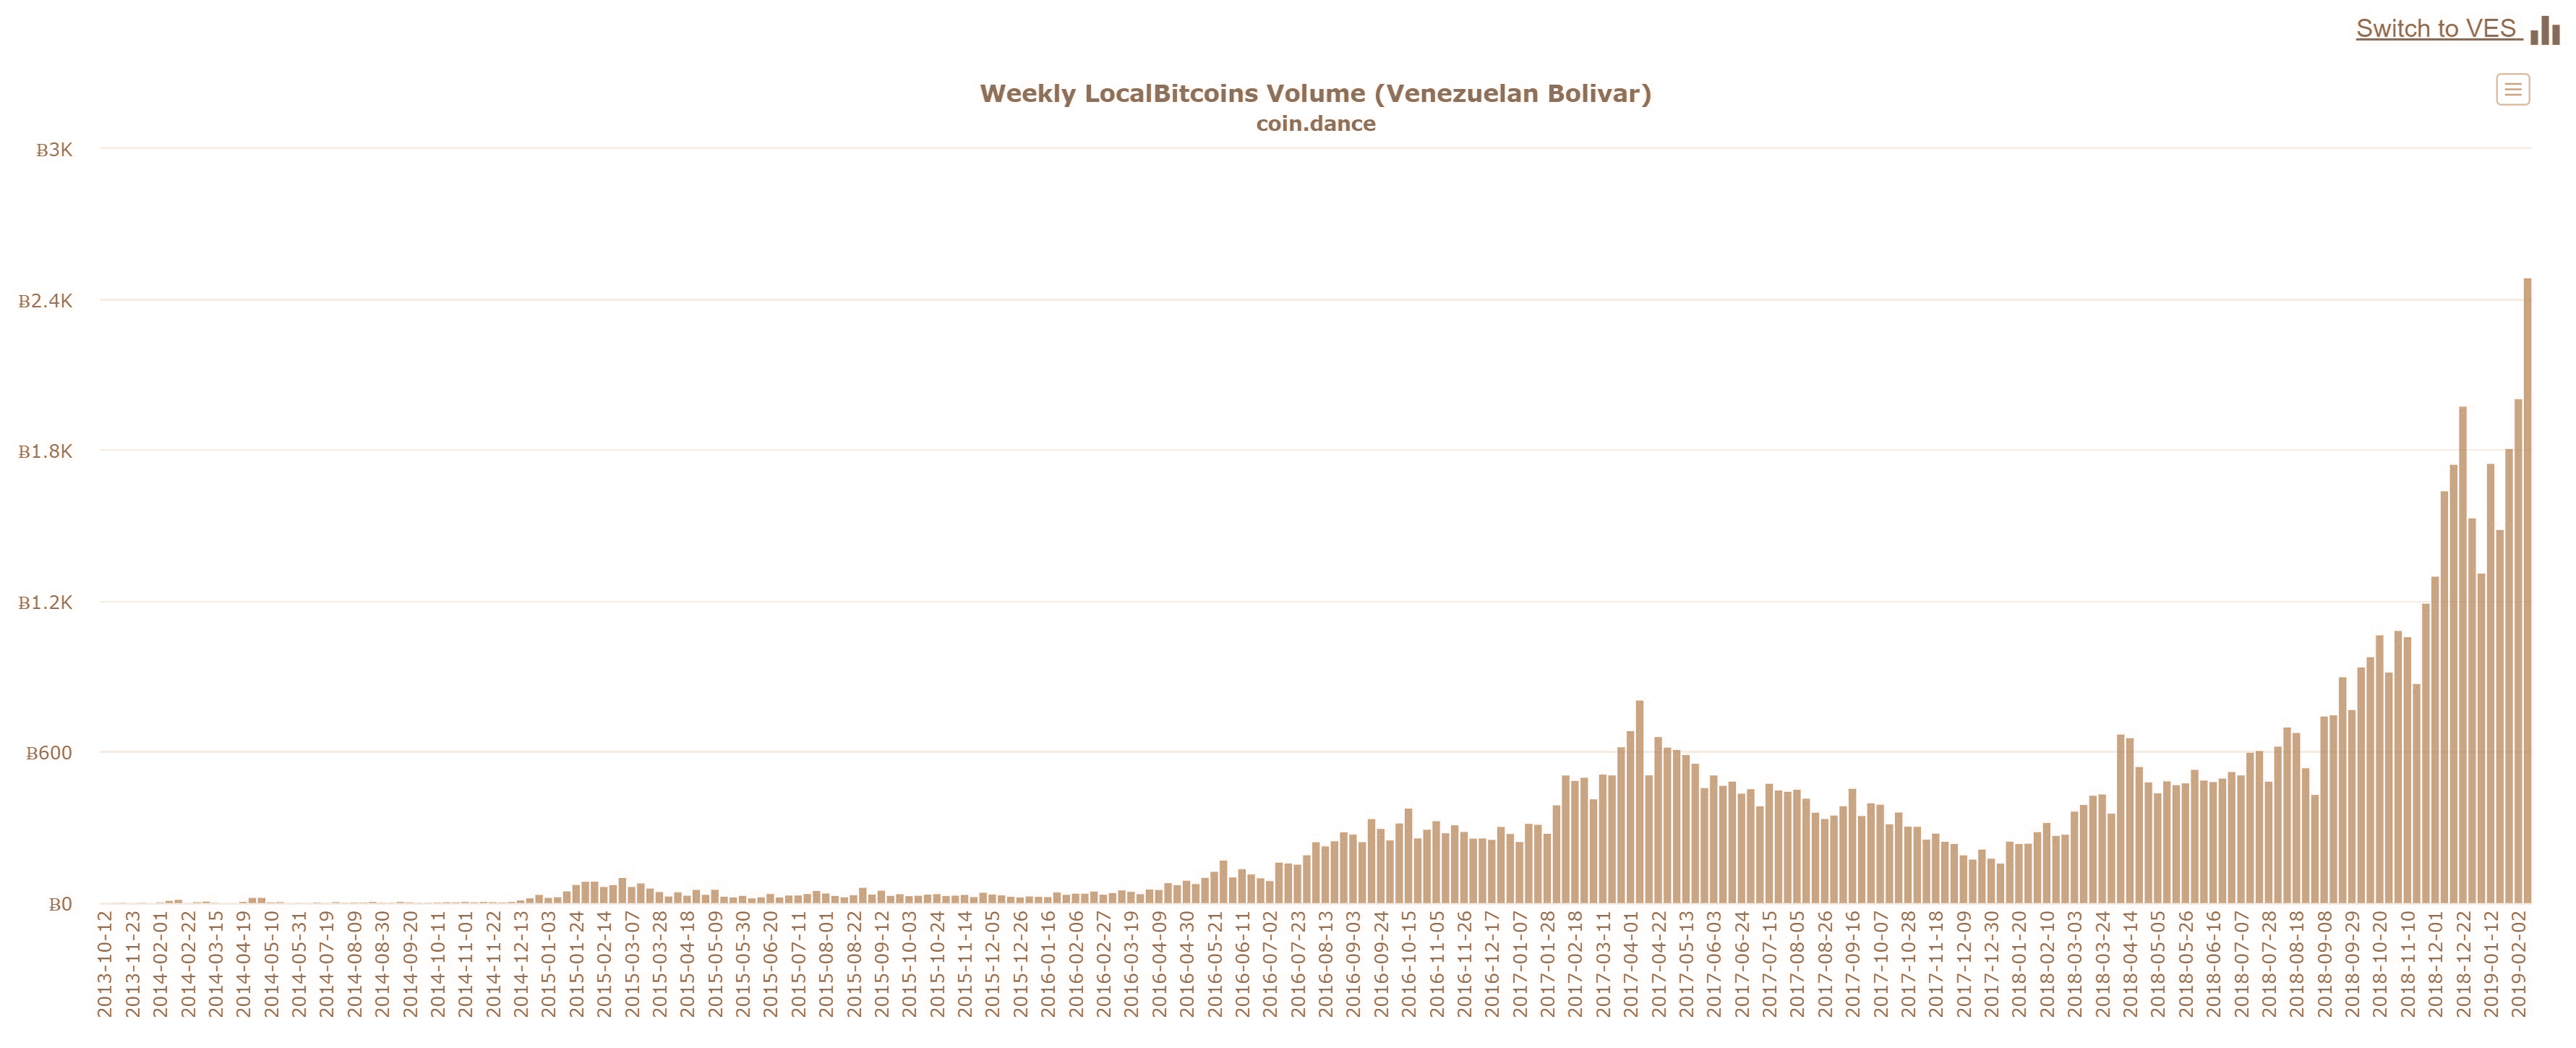 Venezuela's BTC Trading Volumes Hit Record Highs as Crypto Regulations Commence